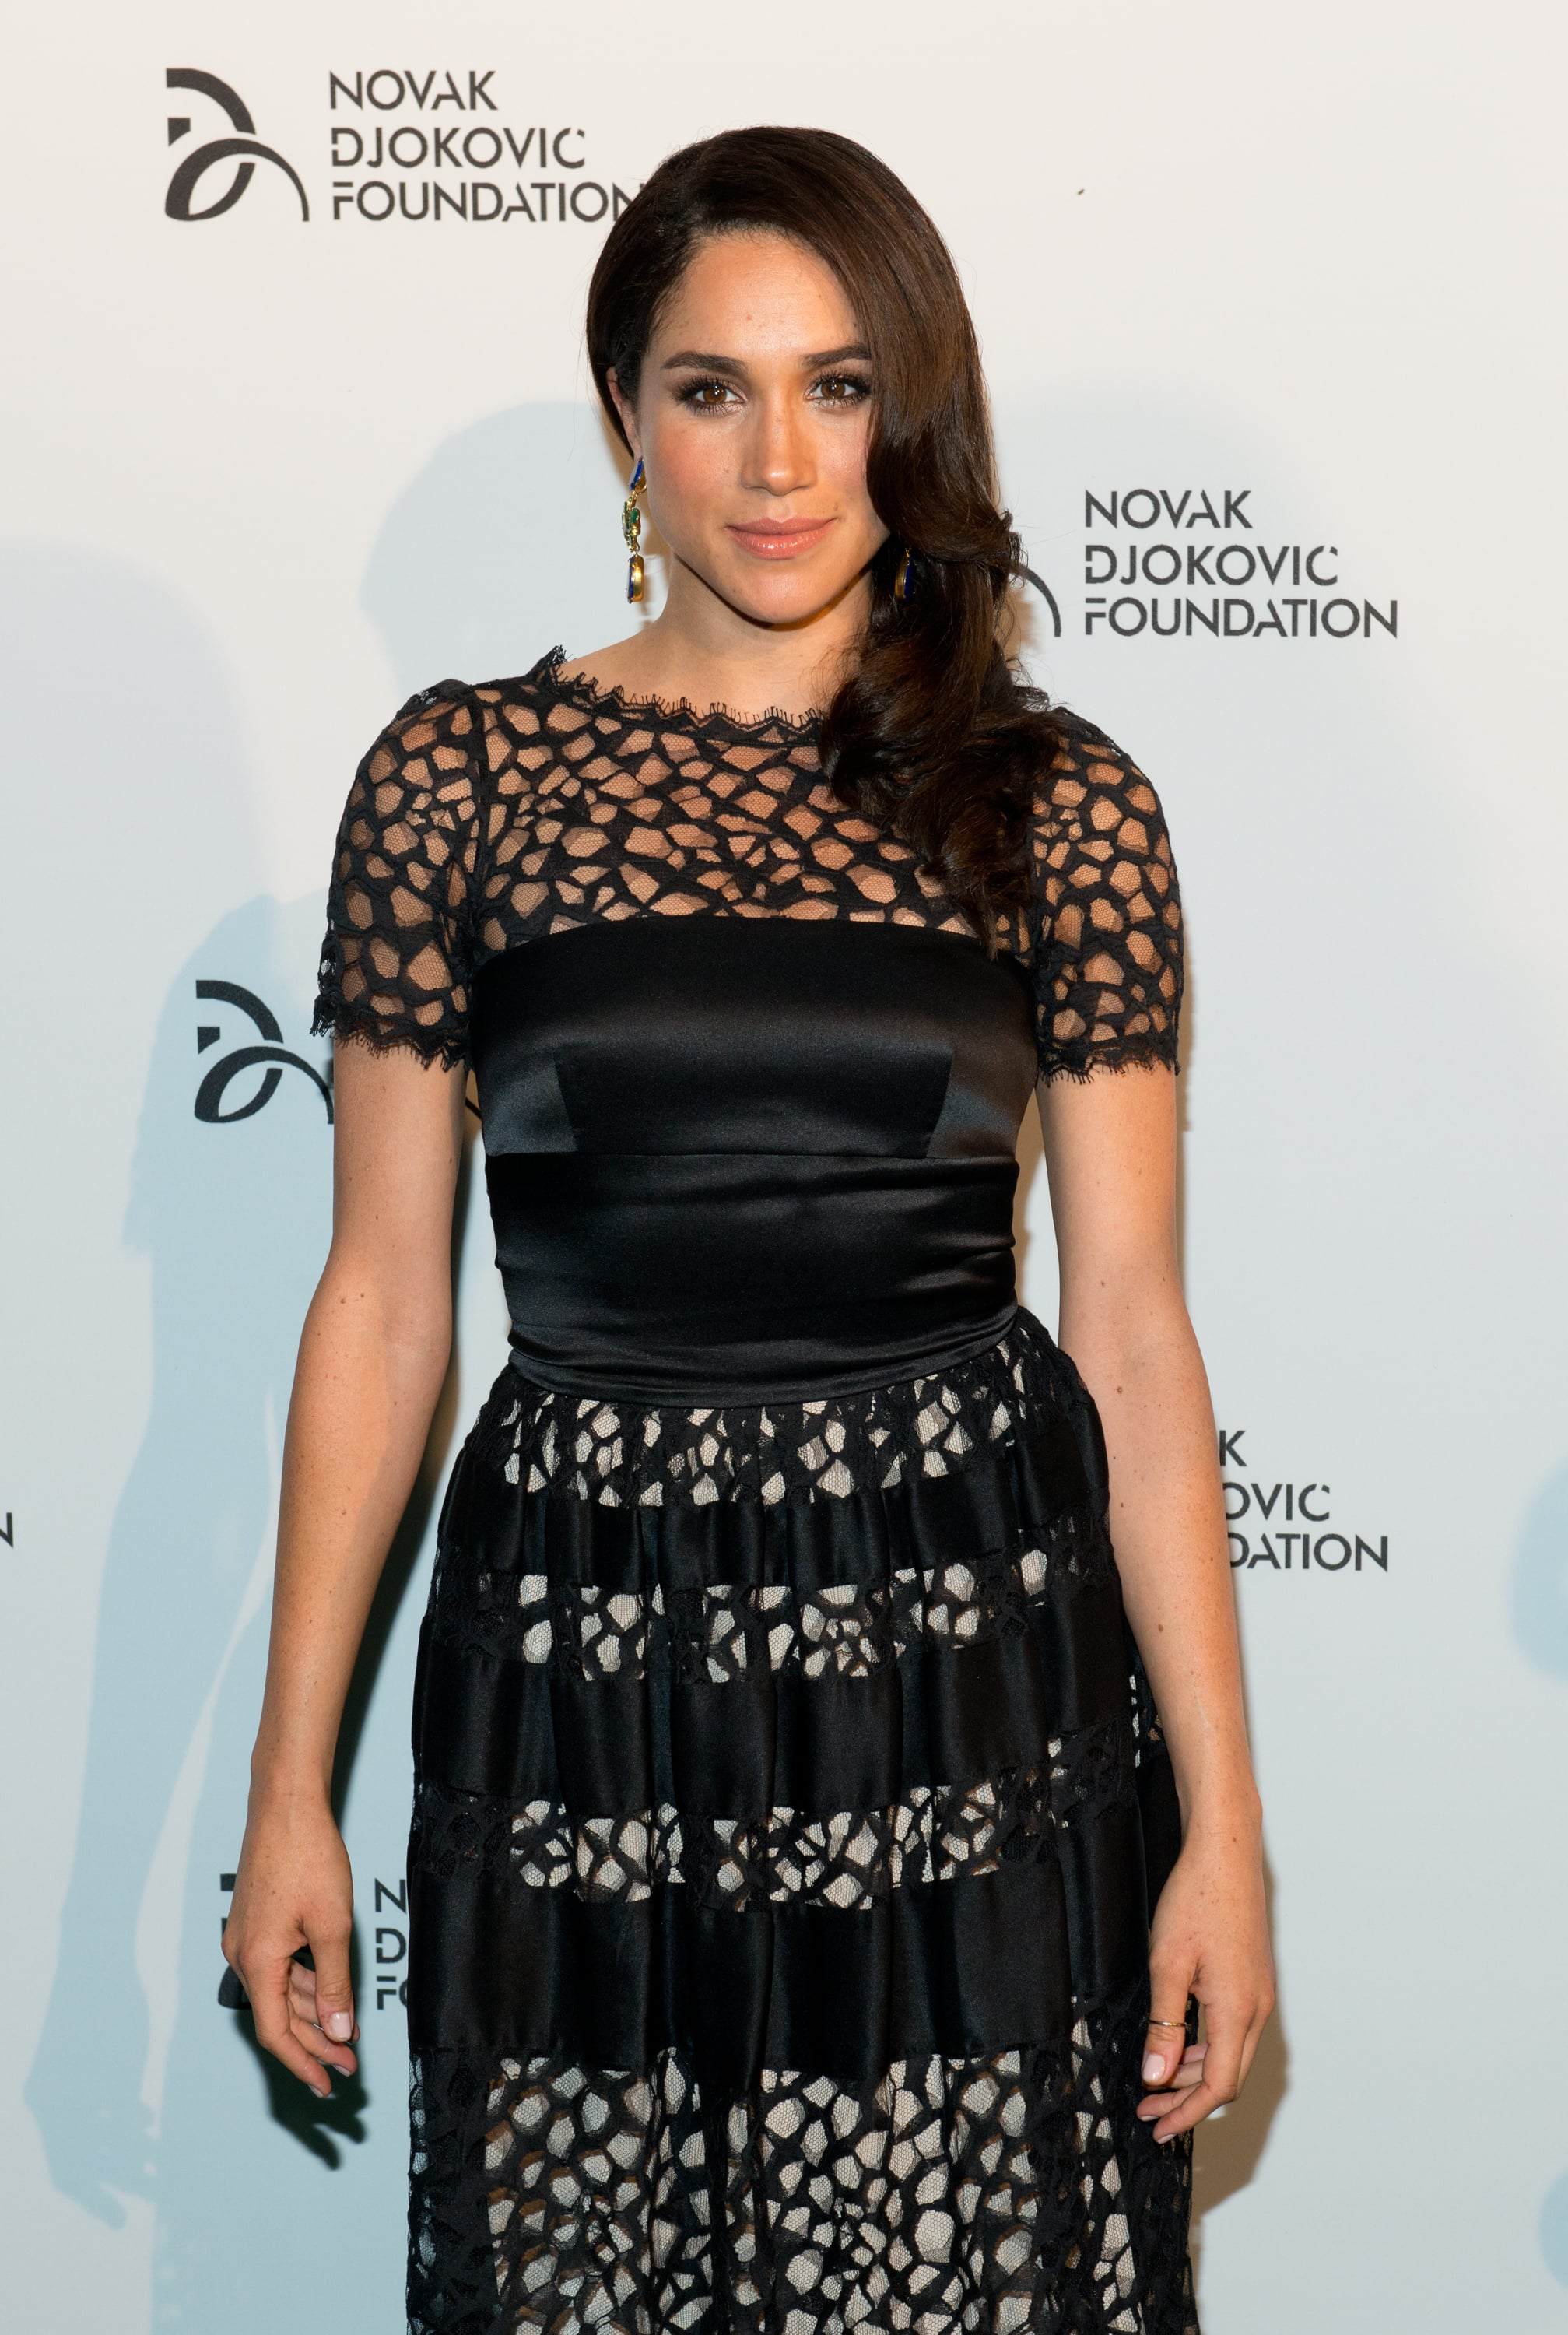 NEW YORK, NY - SEPTEMBER 10: Actress Meghan Markle attends the The 2013 Novak Djokovic Benefit Dinner at Capitale on September 10, 2013 in New York City.  (Photo by Noam Galai/FilmMagic)